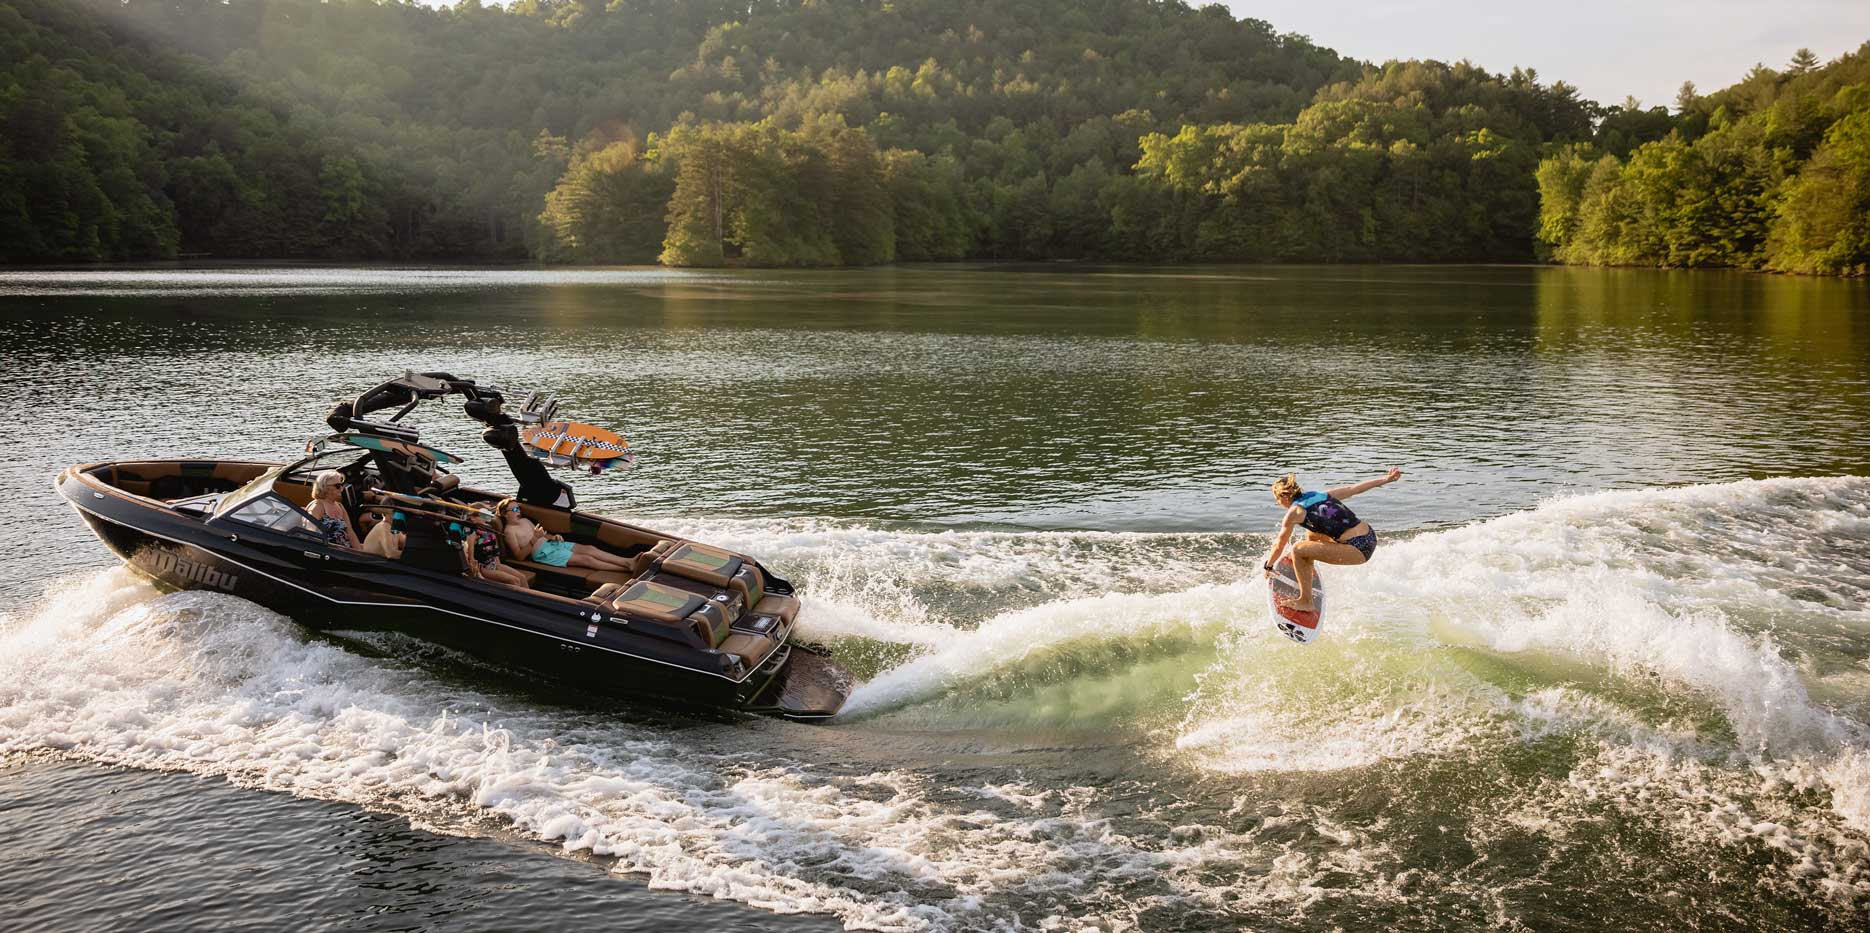 The New Standard for Wakesurfing